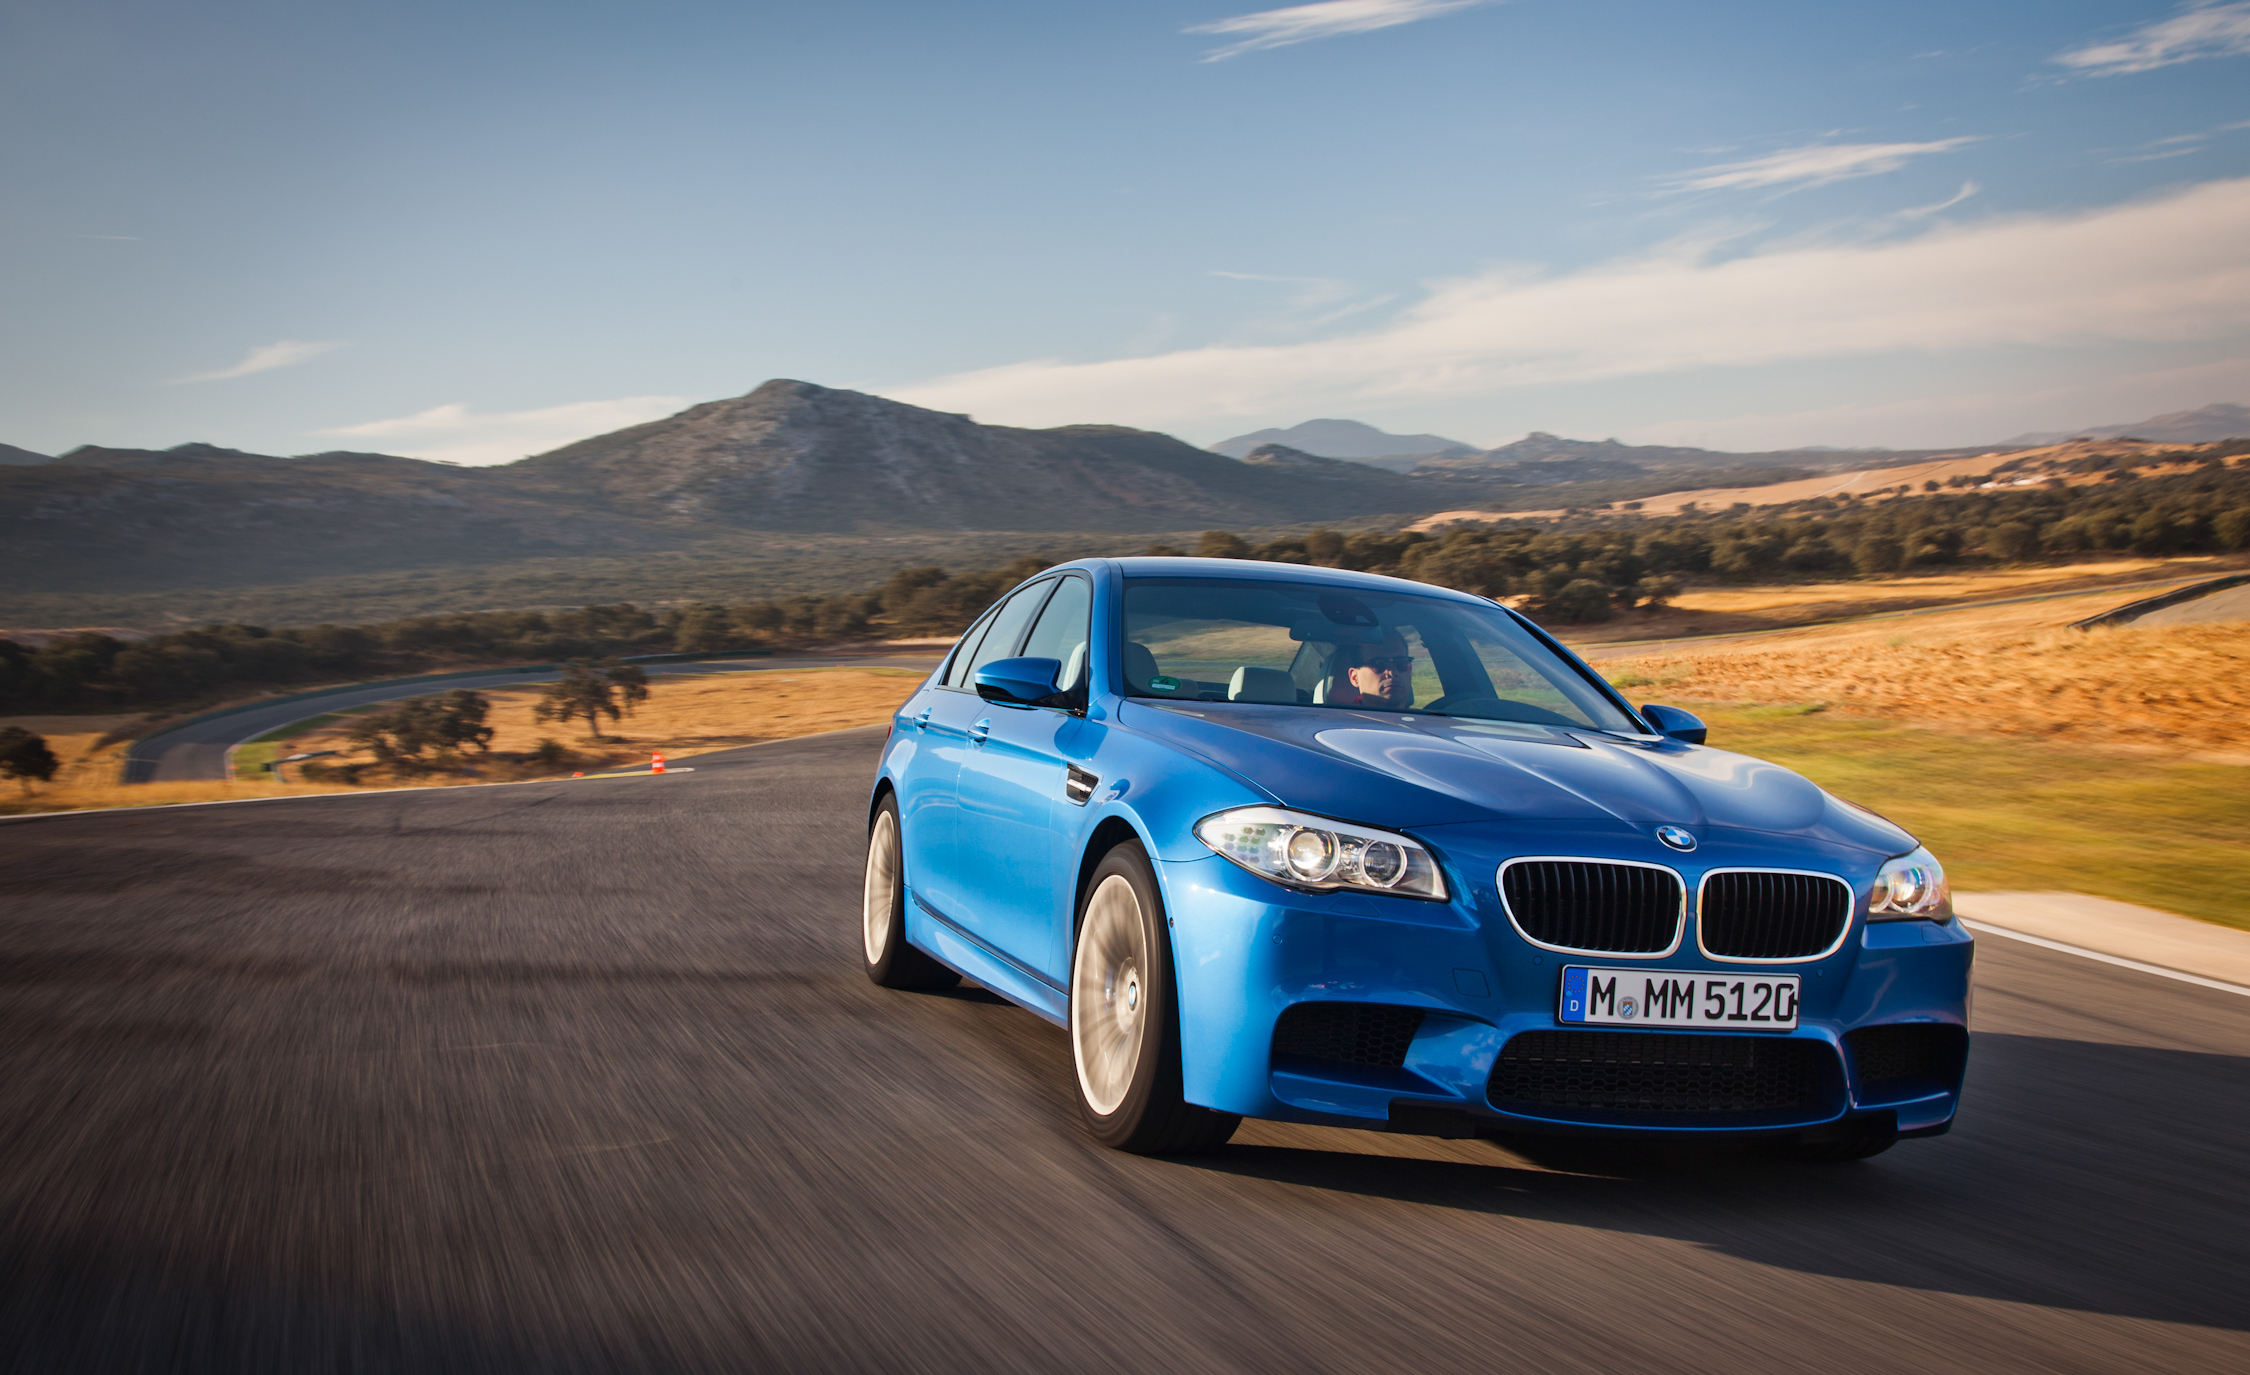 2013 BMW M5 Test Drive Performance (View 3 of 22)